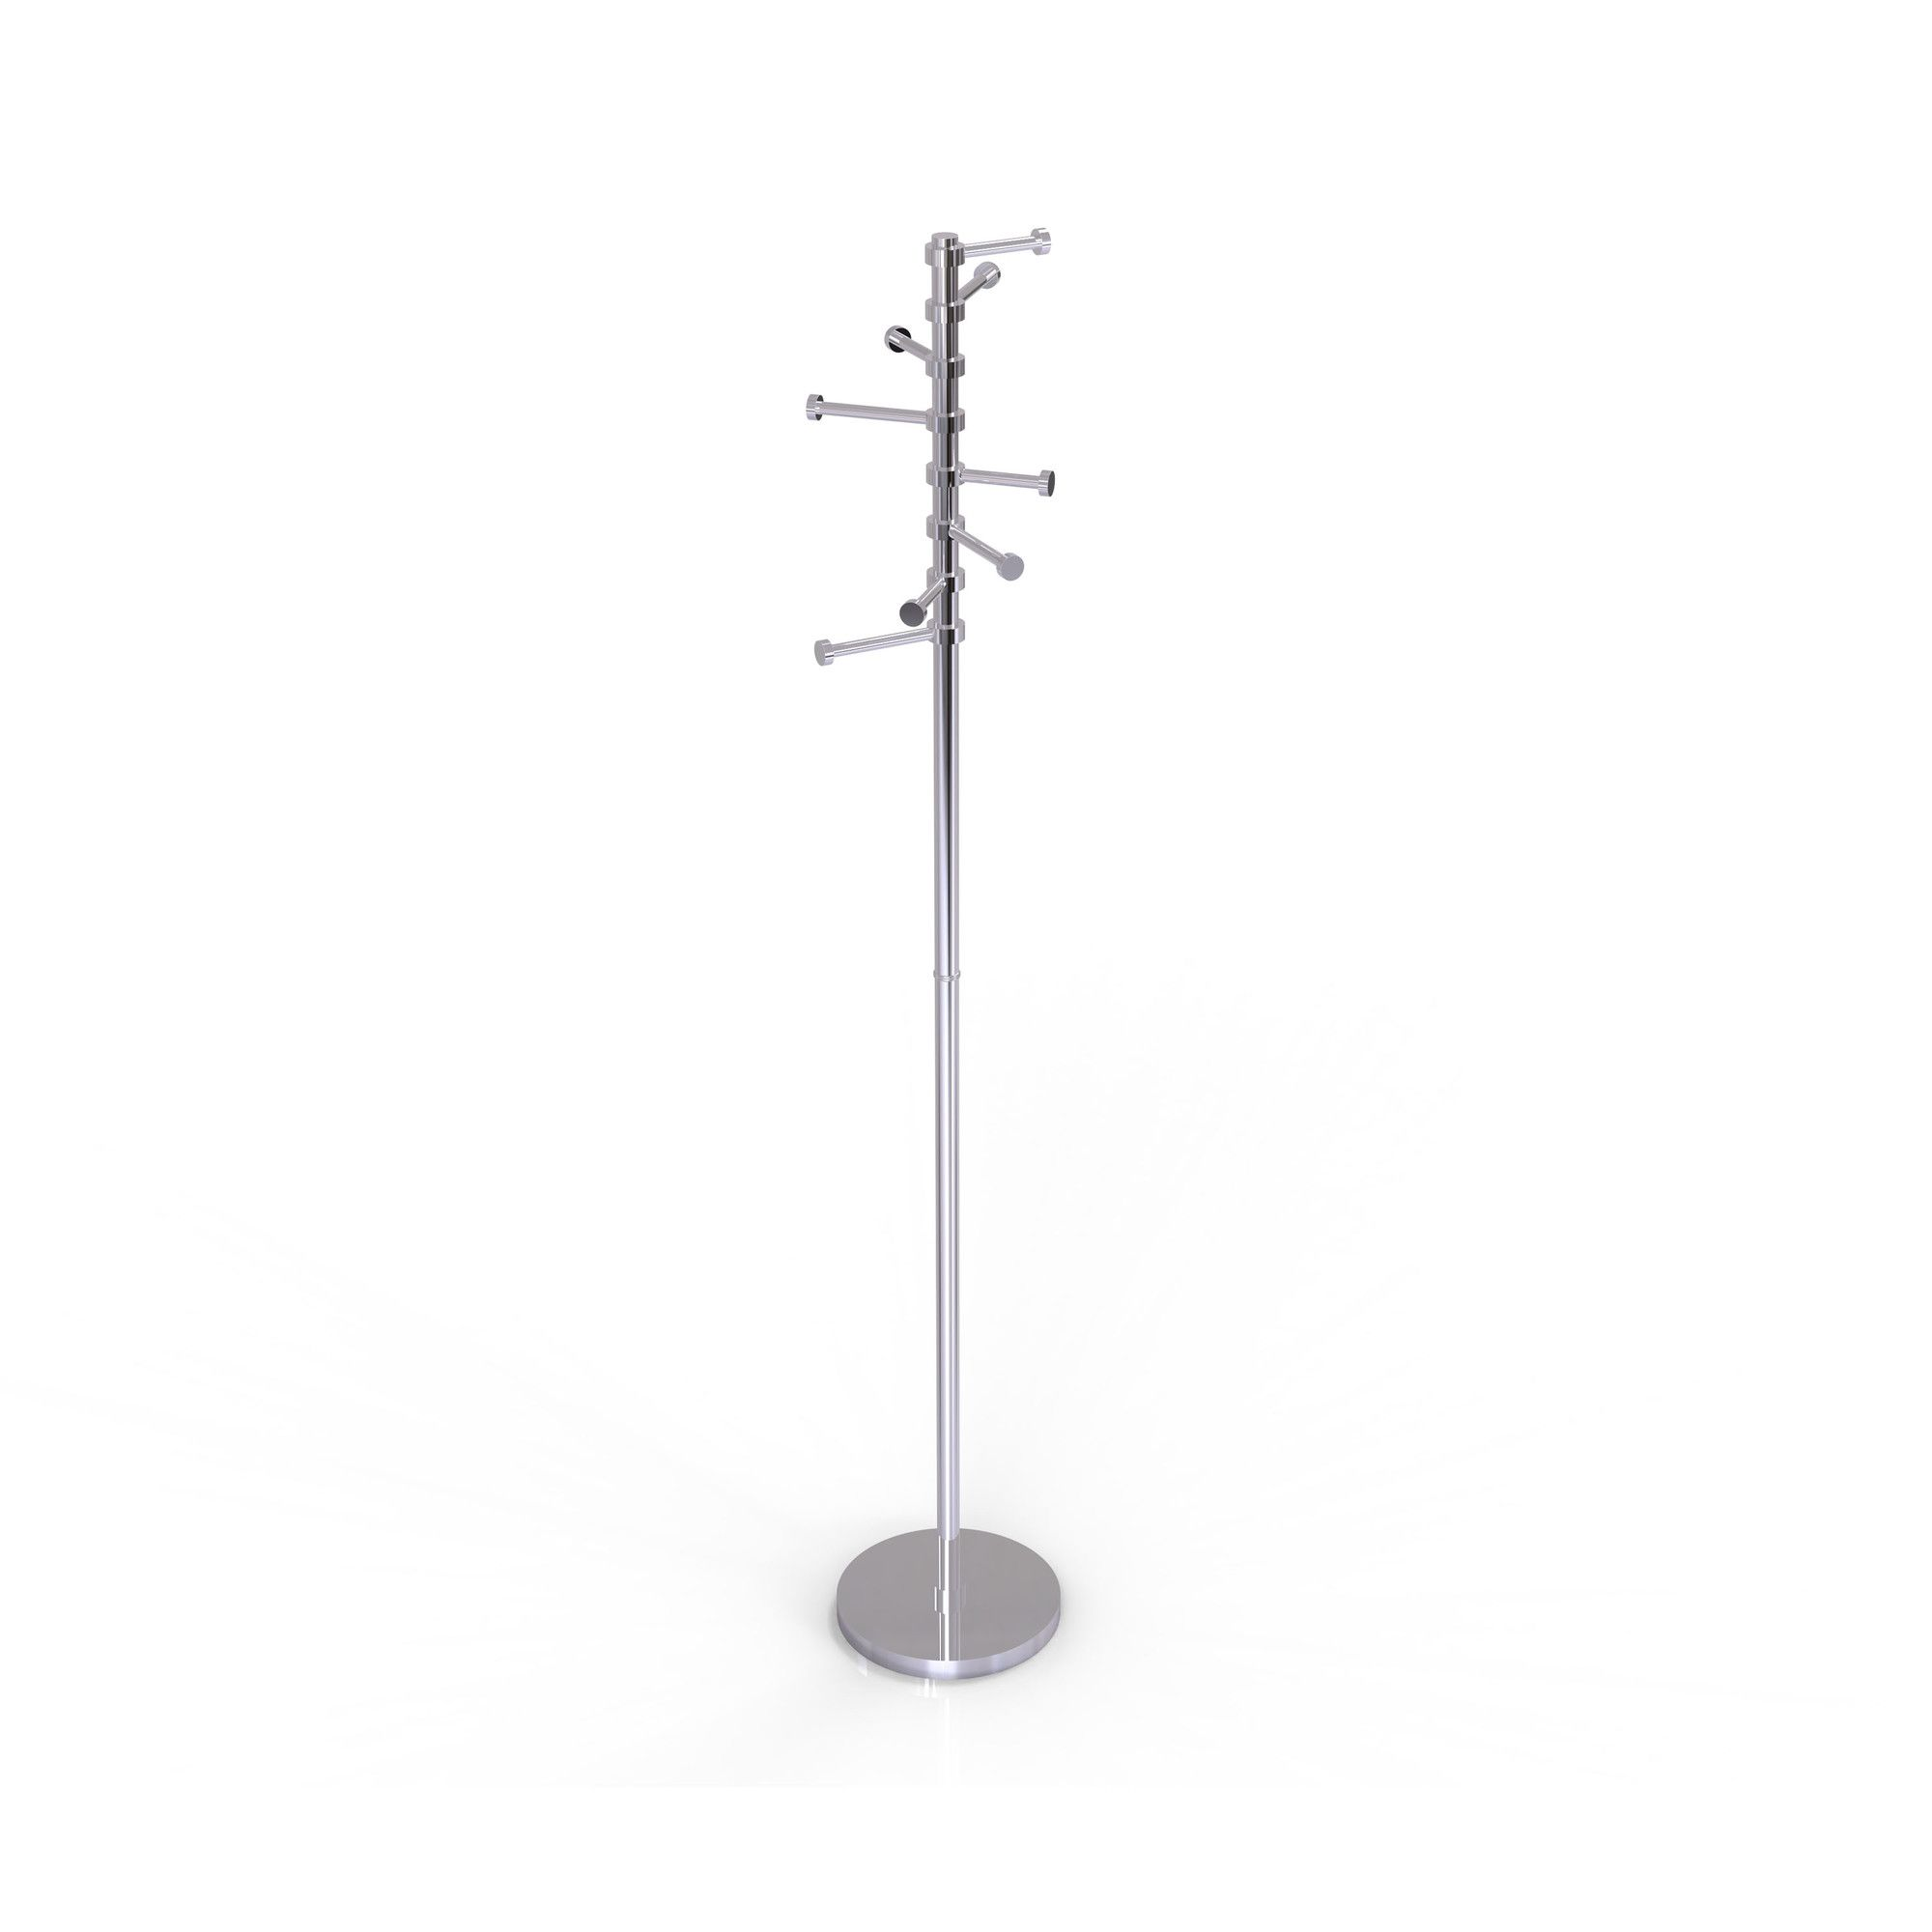 target exciting commercial free classy metal with design at of standing clothes rack popular